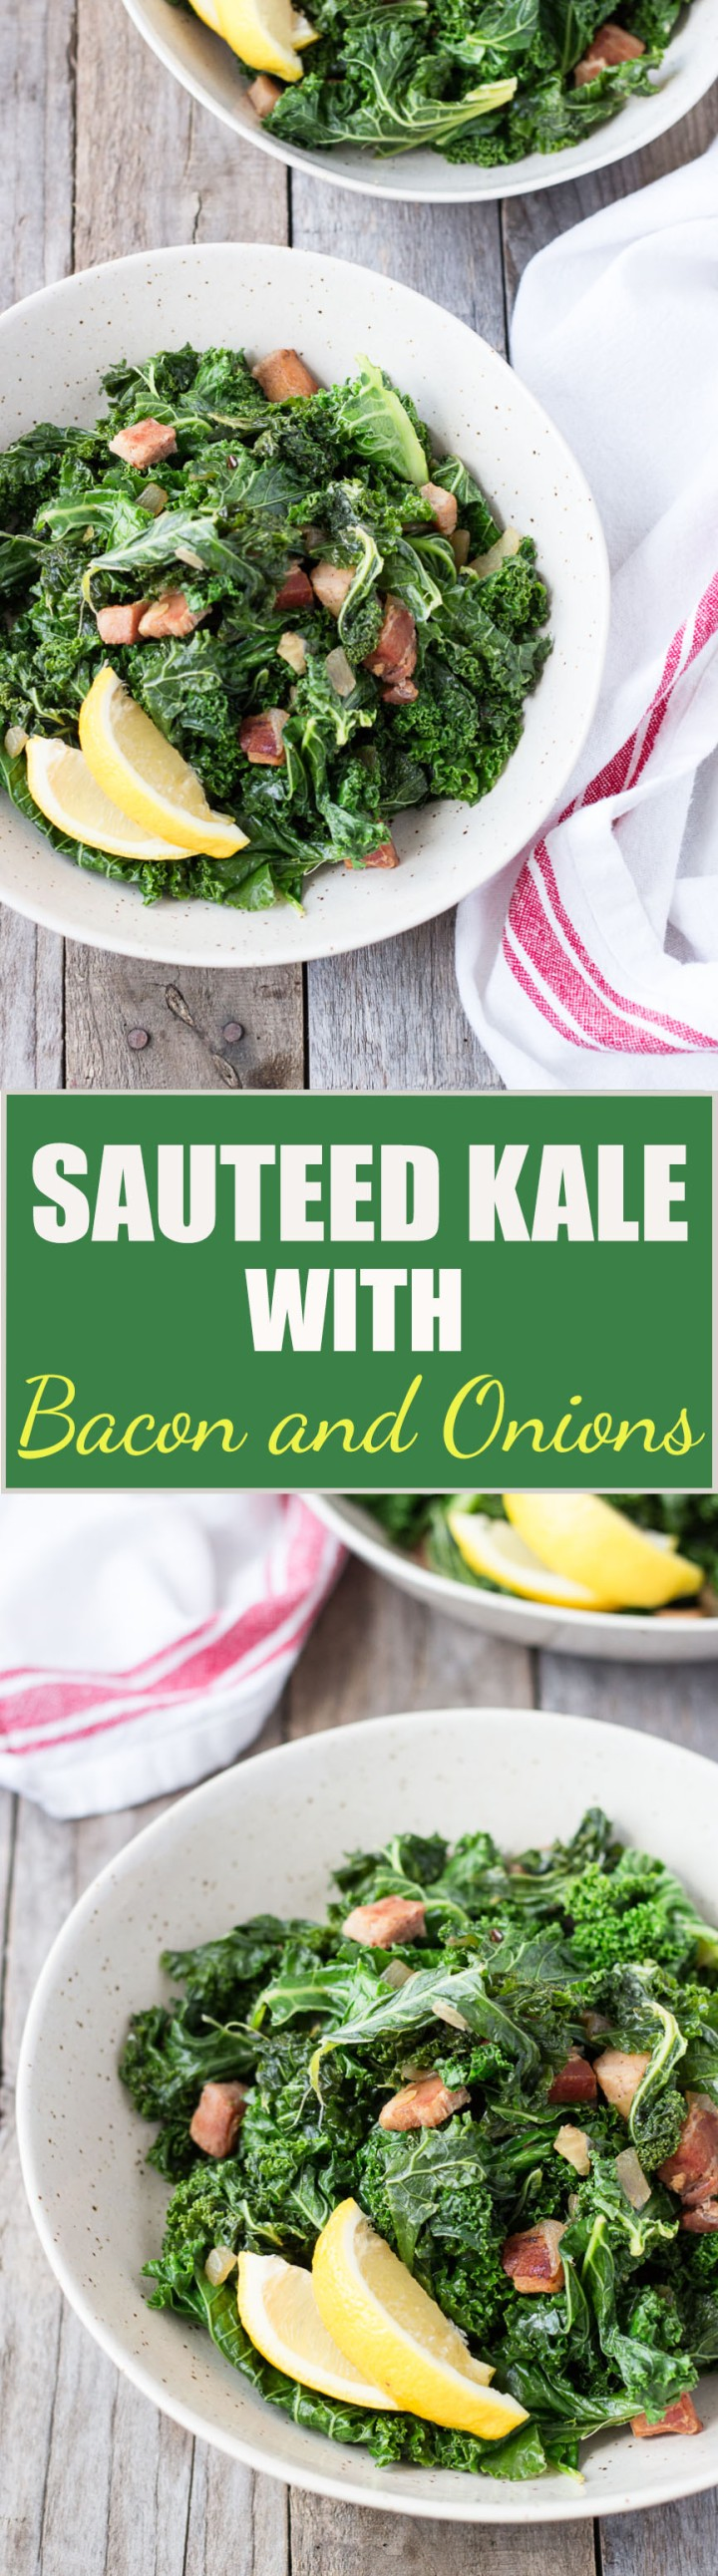 kale with bacon & onions, for pinterest, FINAL